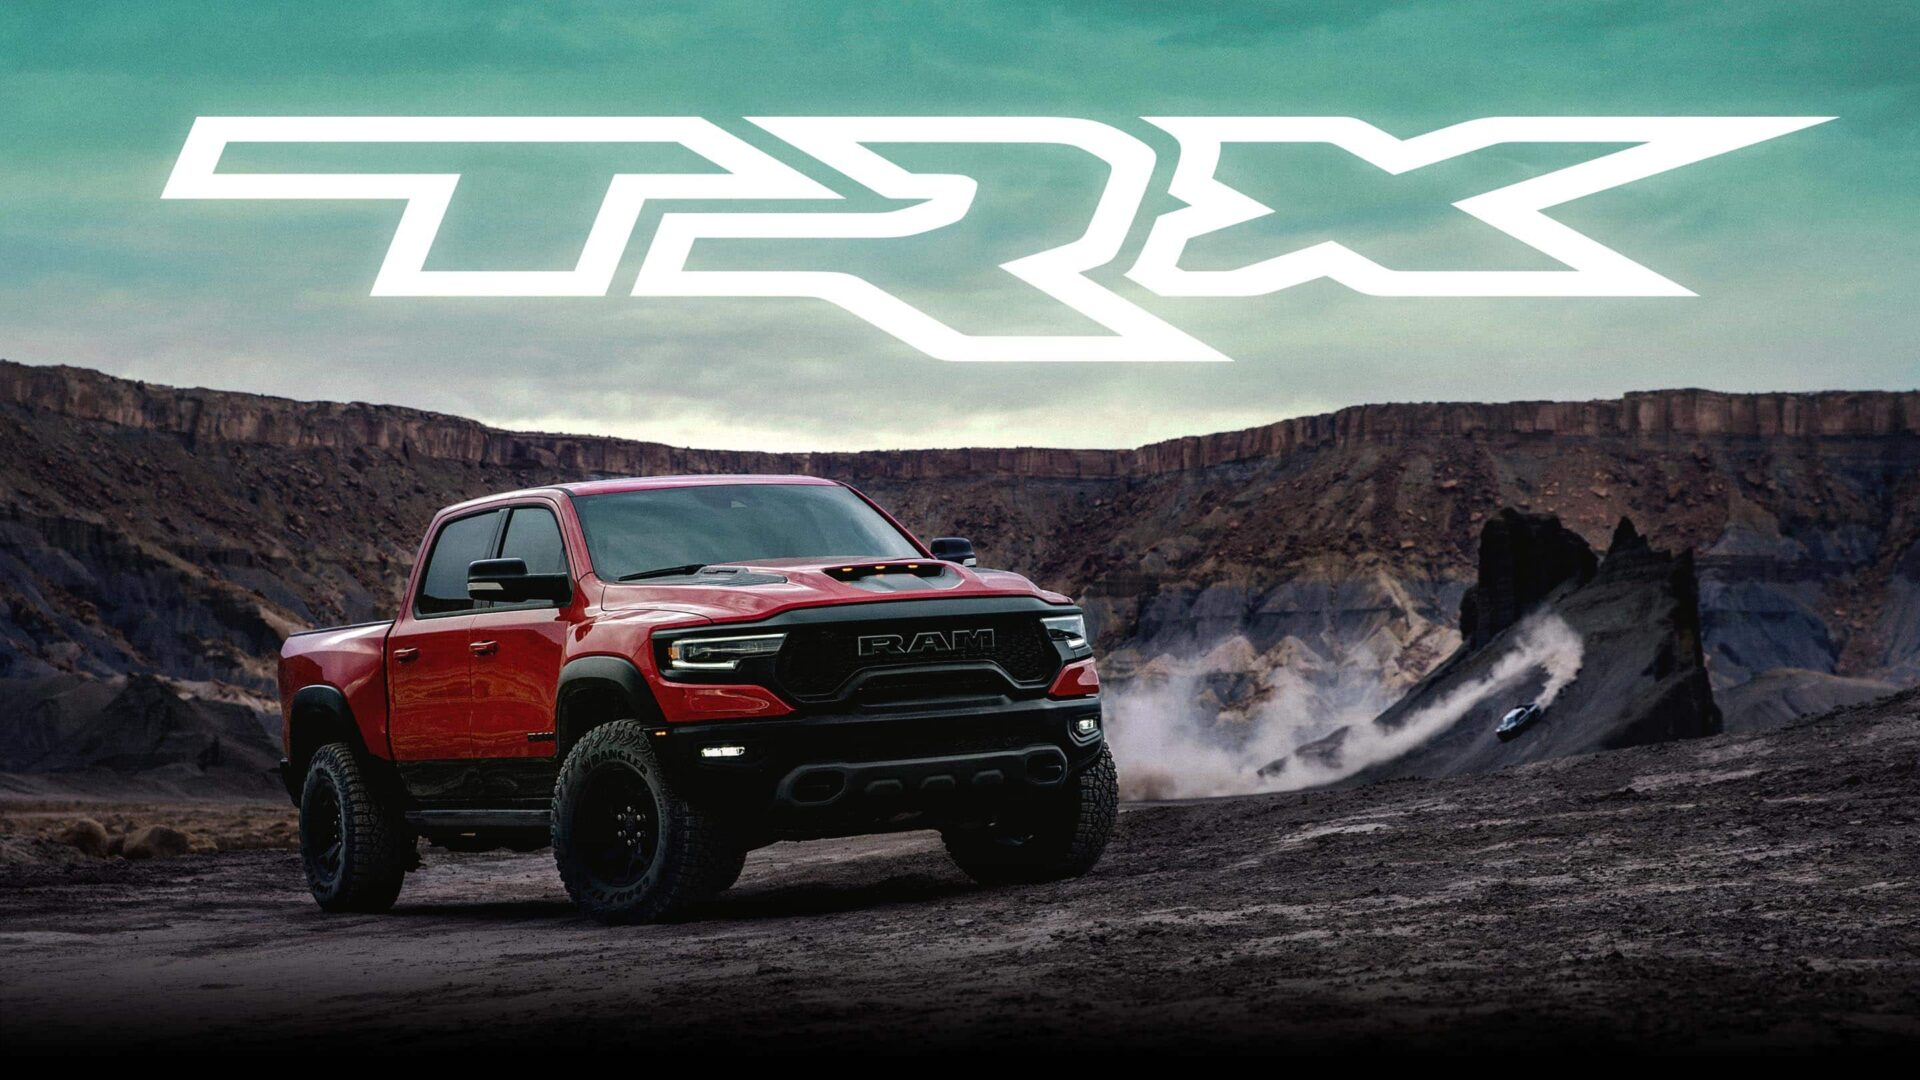 2021 Ram Truck Trx Will Be The Quickest Pickup Truck Of The Upcoming Year